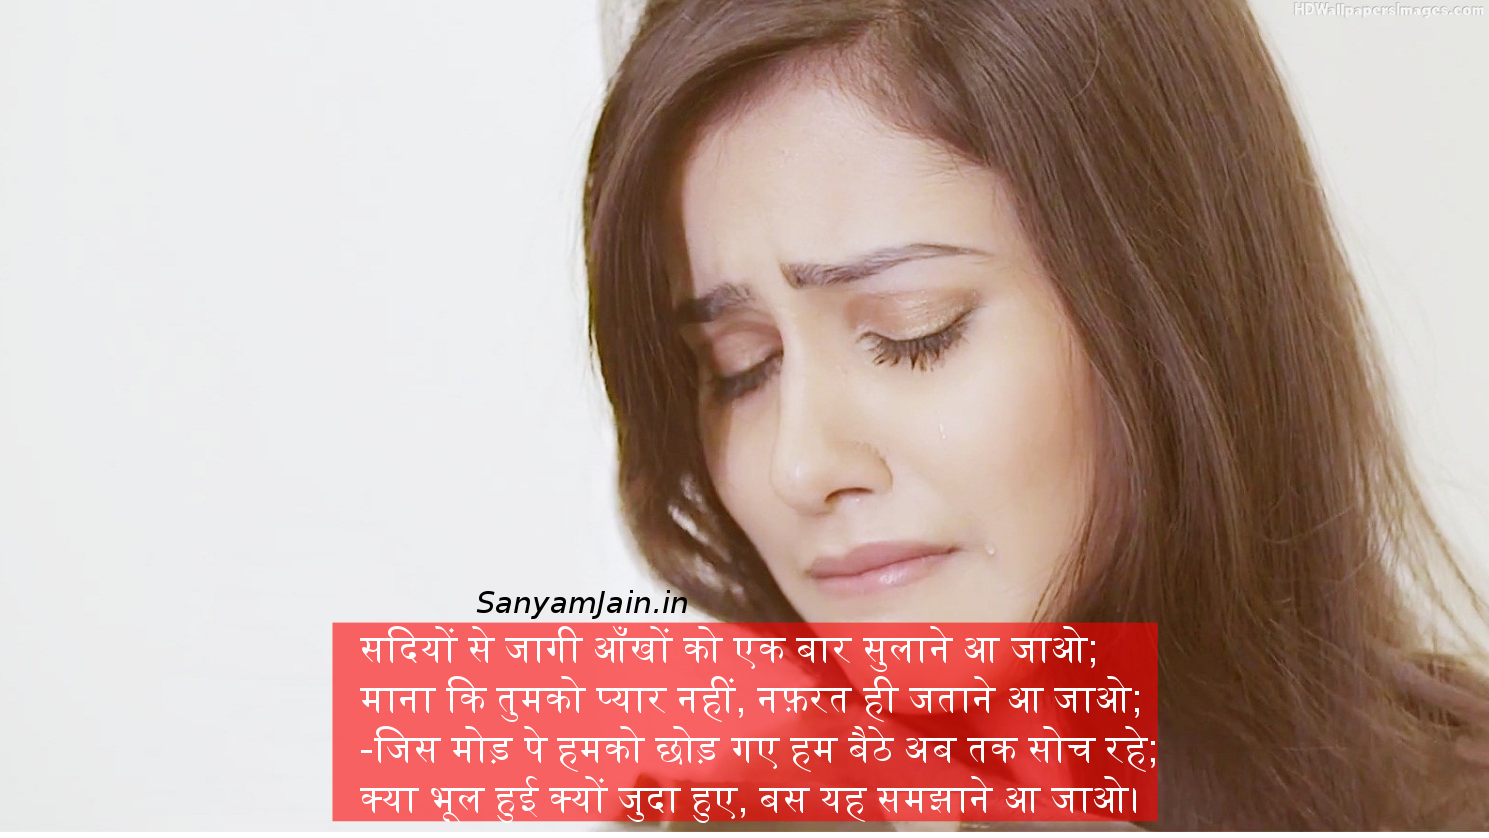 Very Heart Touching Sad Sher O Shayari Wallpaper In Hindi Sadiyon